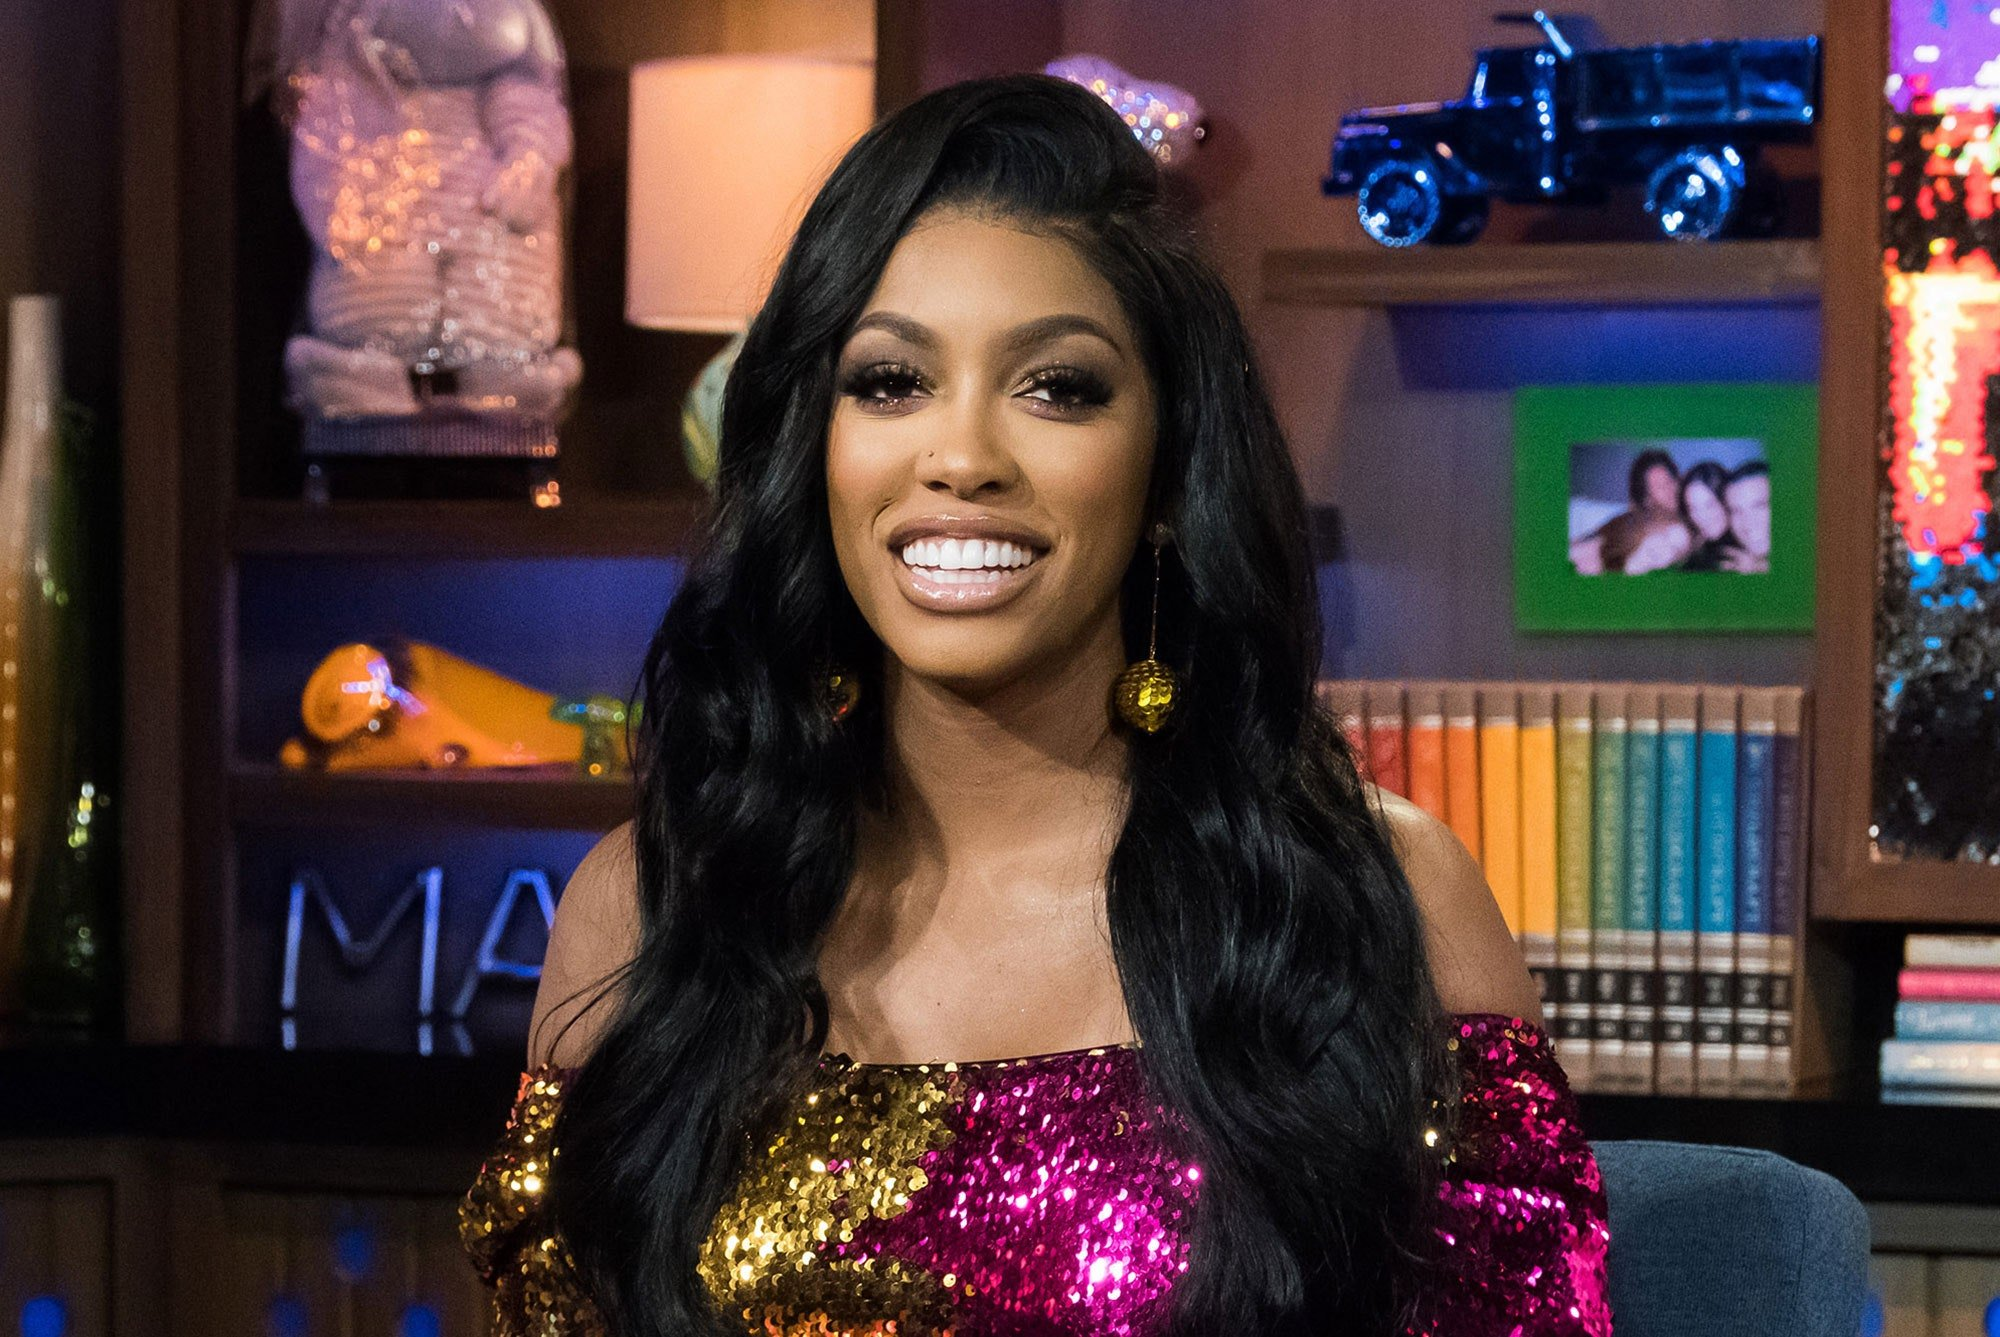 Porsha Williams Shares The Most Exciting Announcement – Check It Out Here